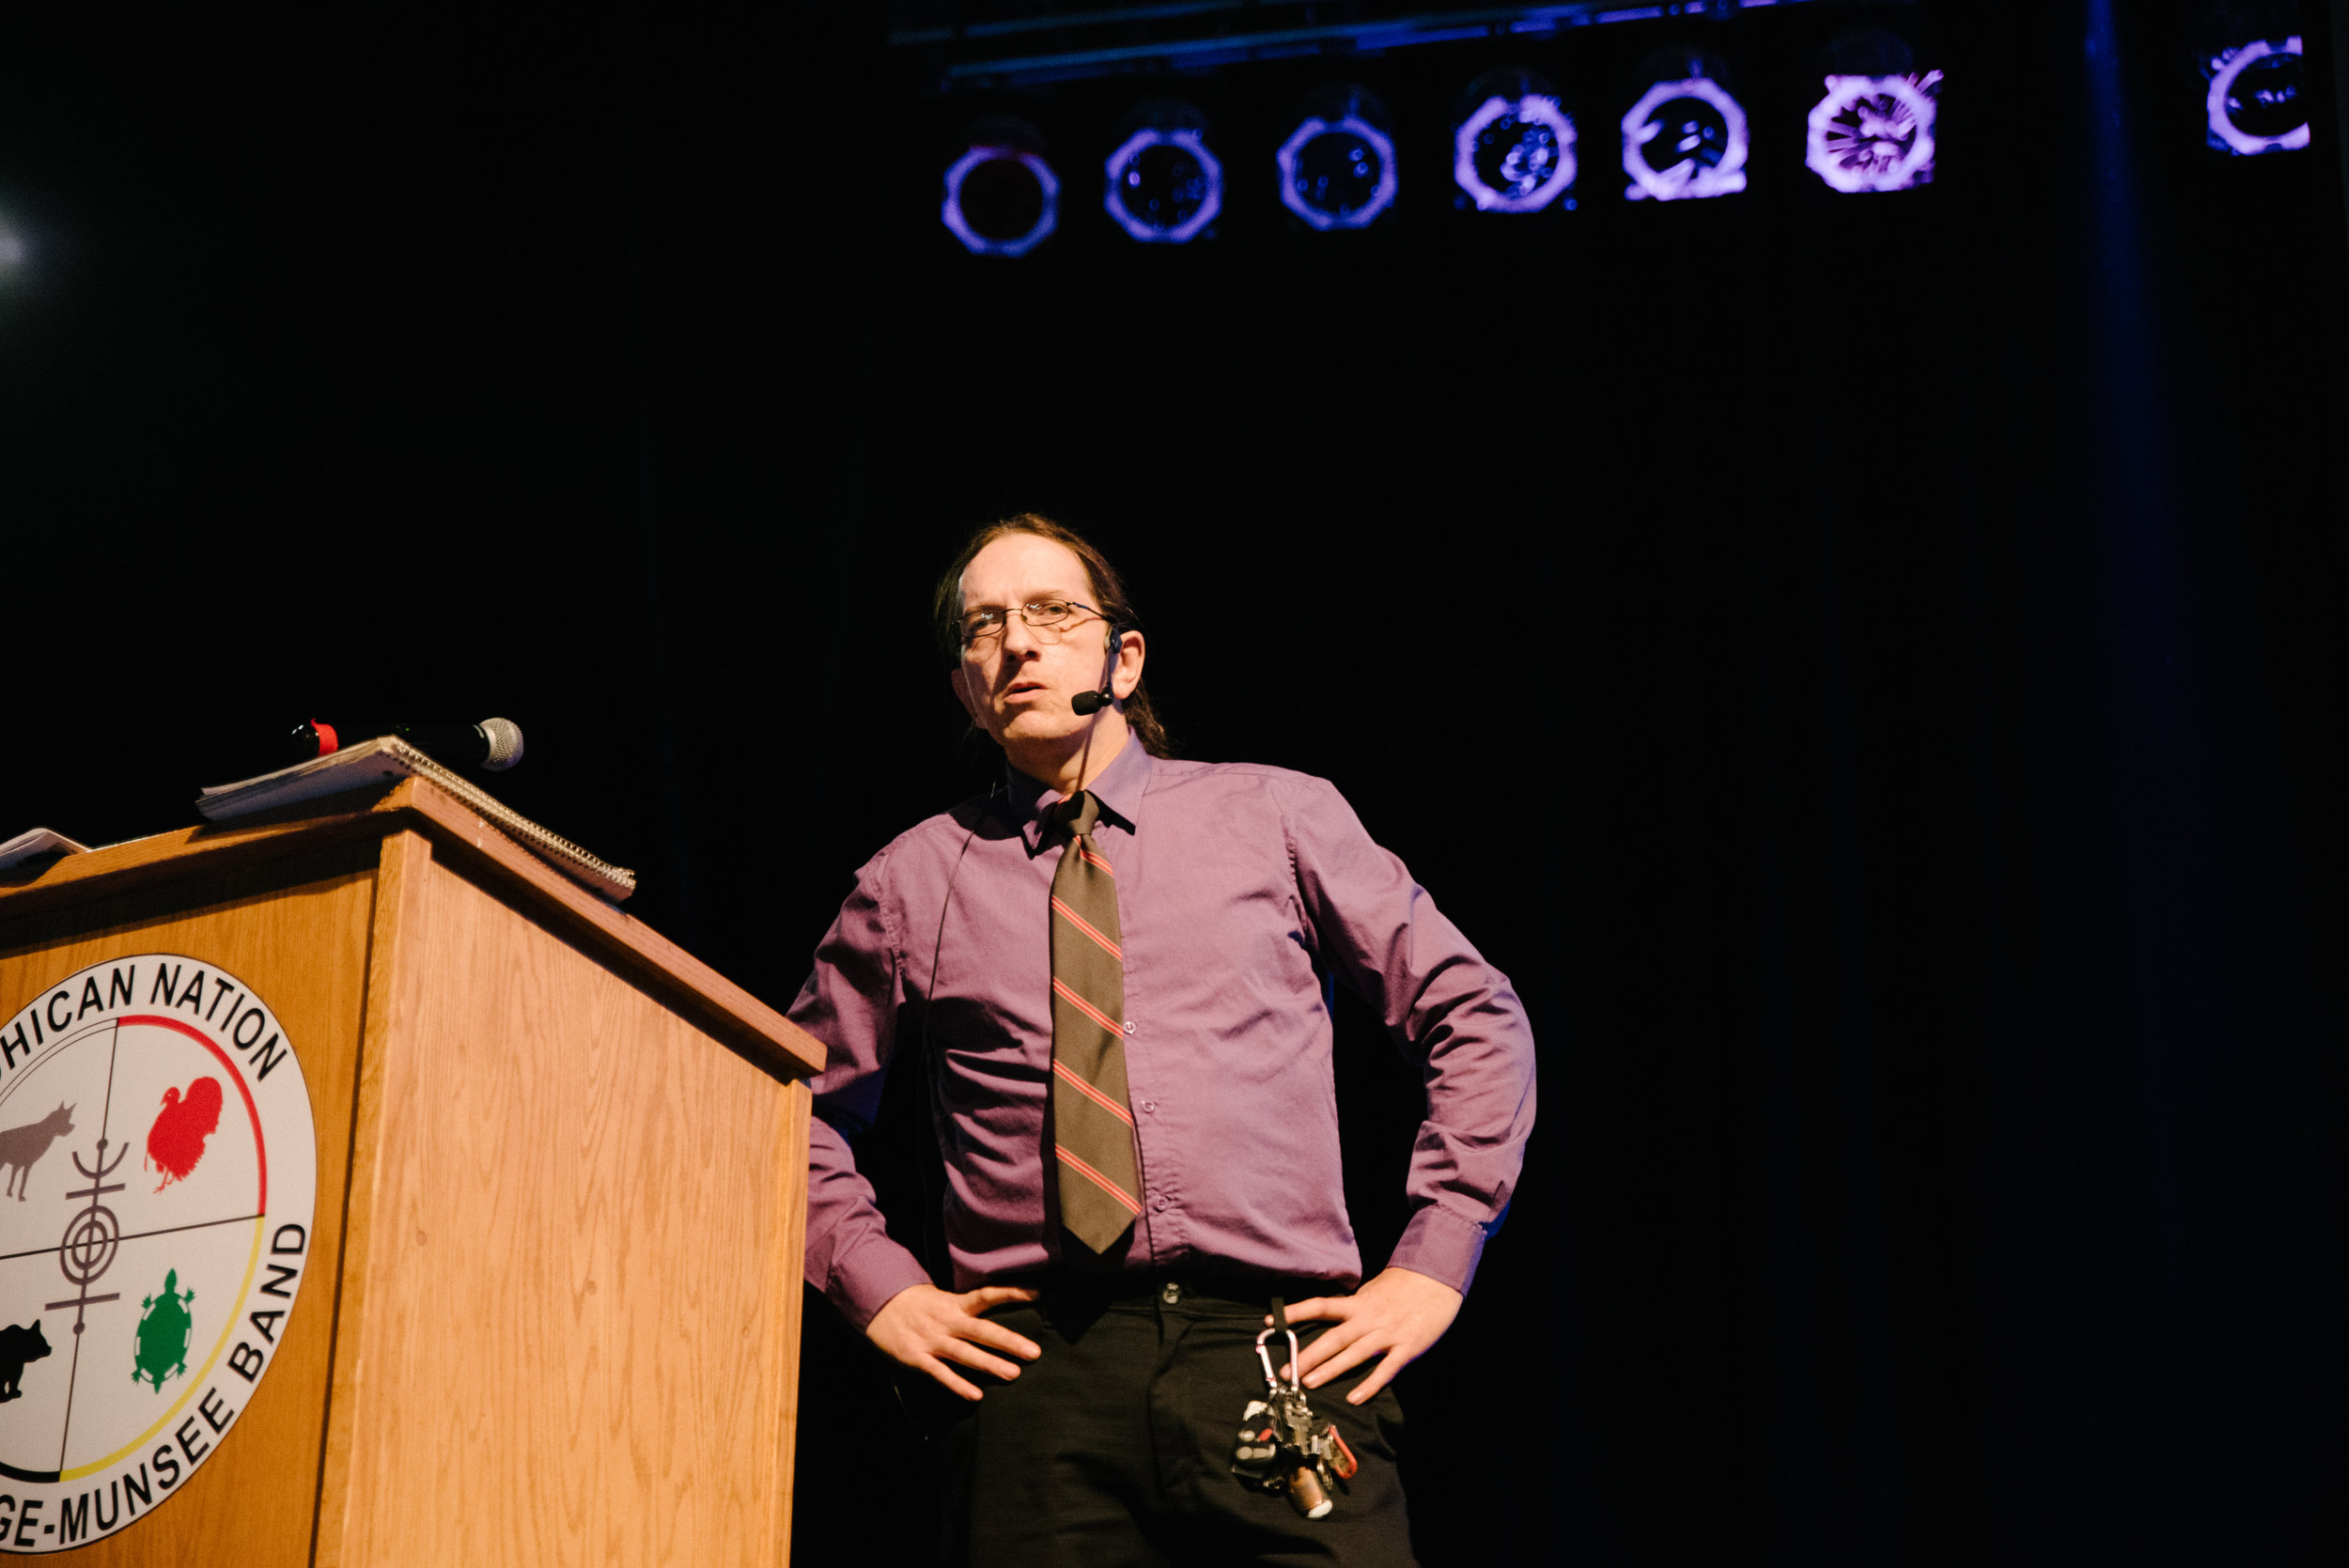 Kevin Malek of the UFO Wisconsin Research Team presented on eerie UFO sightings in Wisconsin.